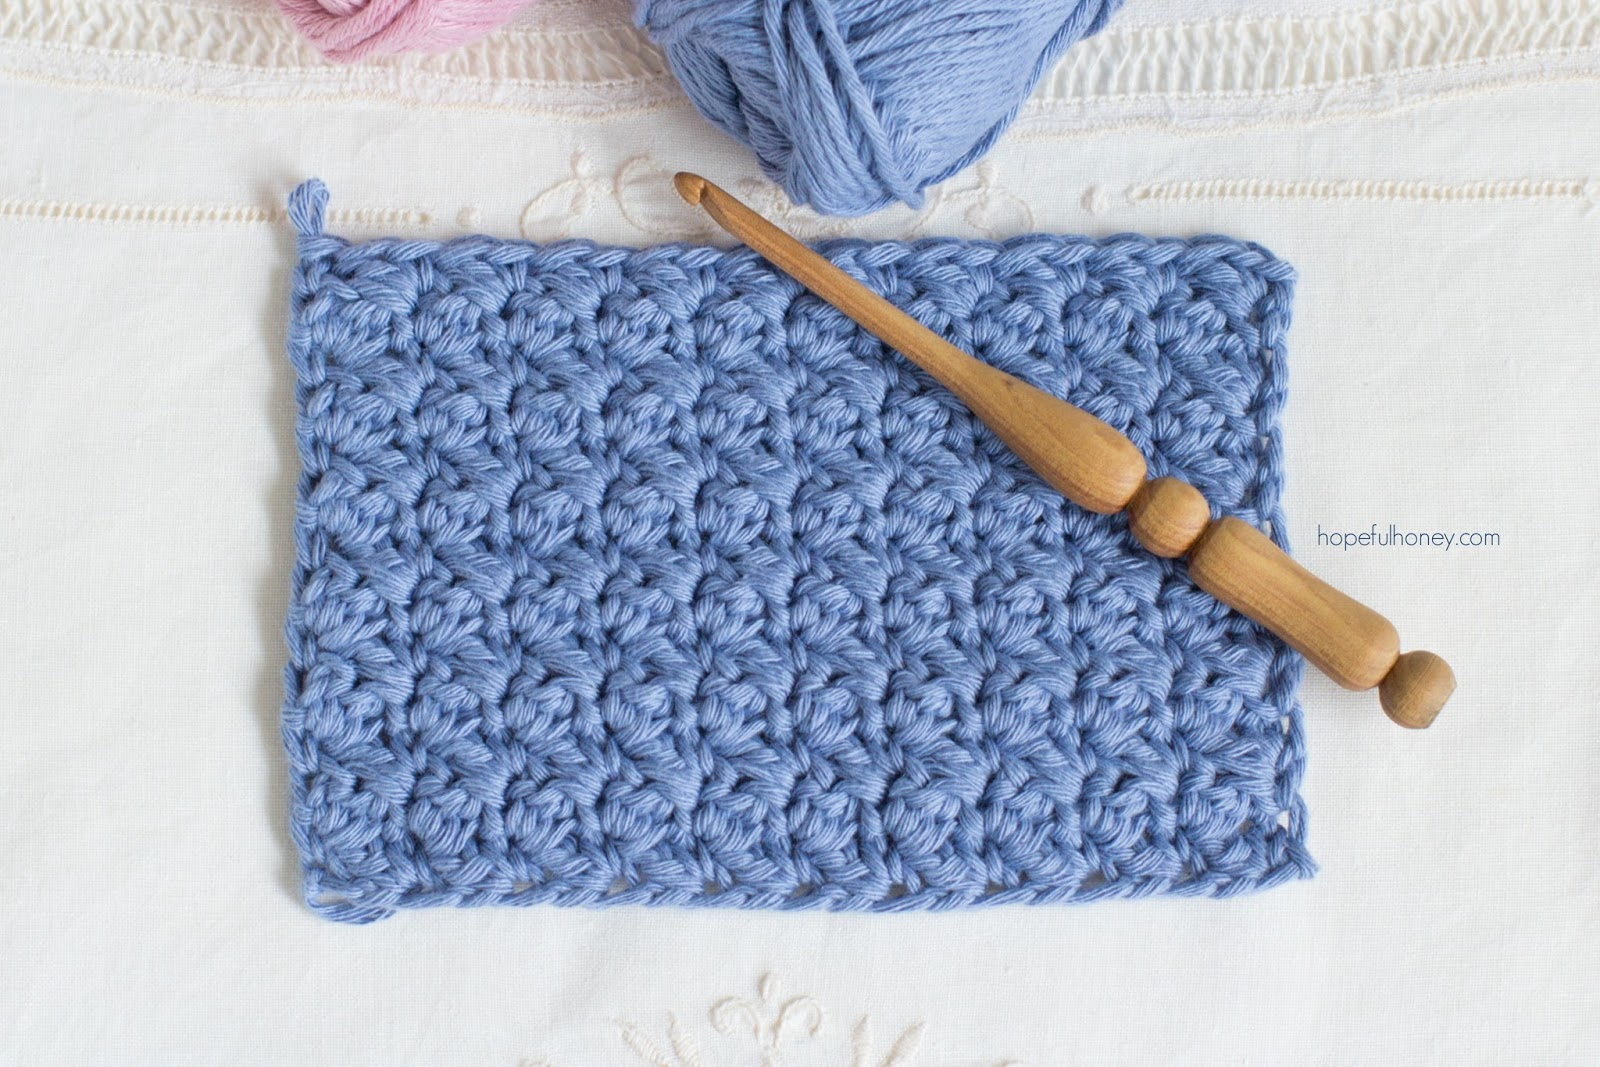 How To Crochet A : Hopeful Honey Craft, Crochet, Create: How To: Crochet The Suzette ...